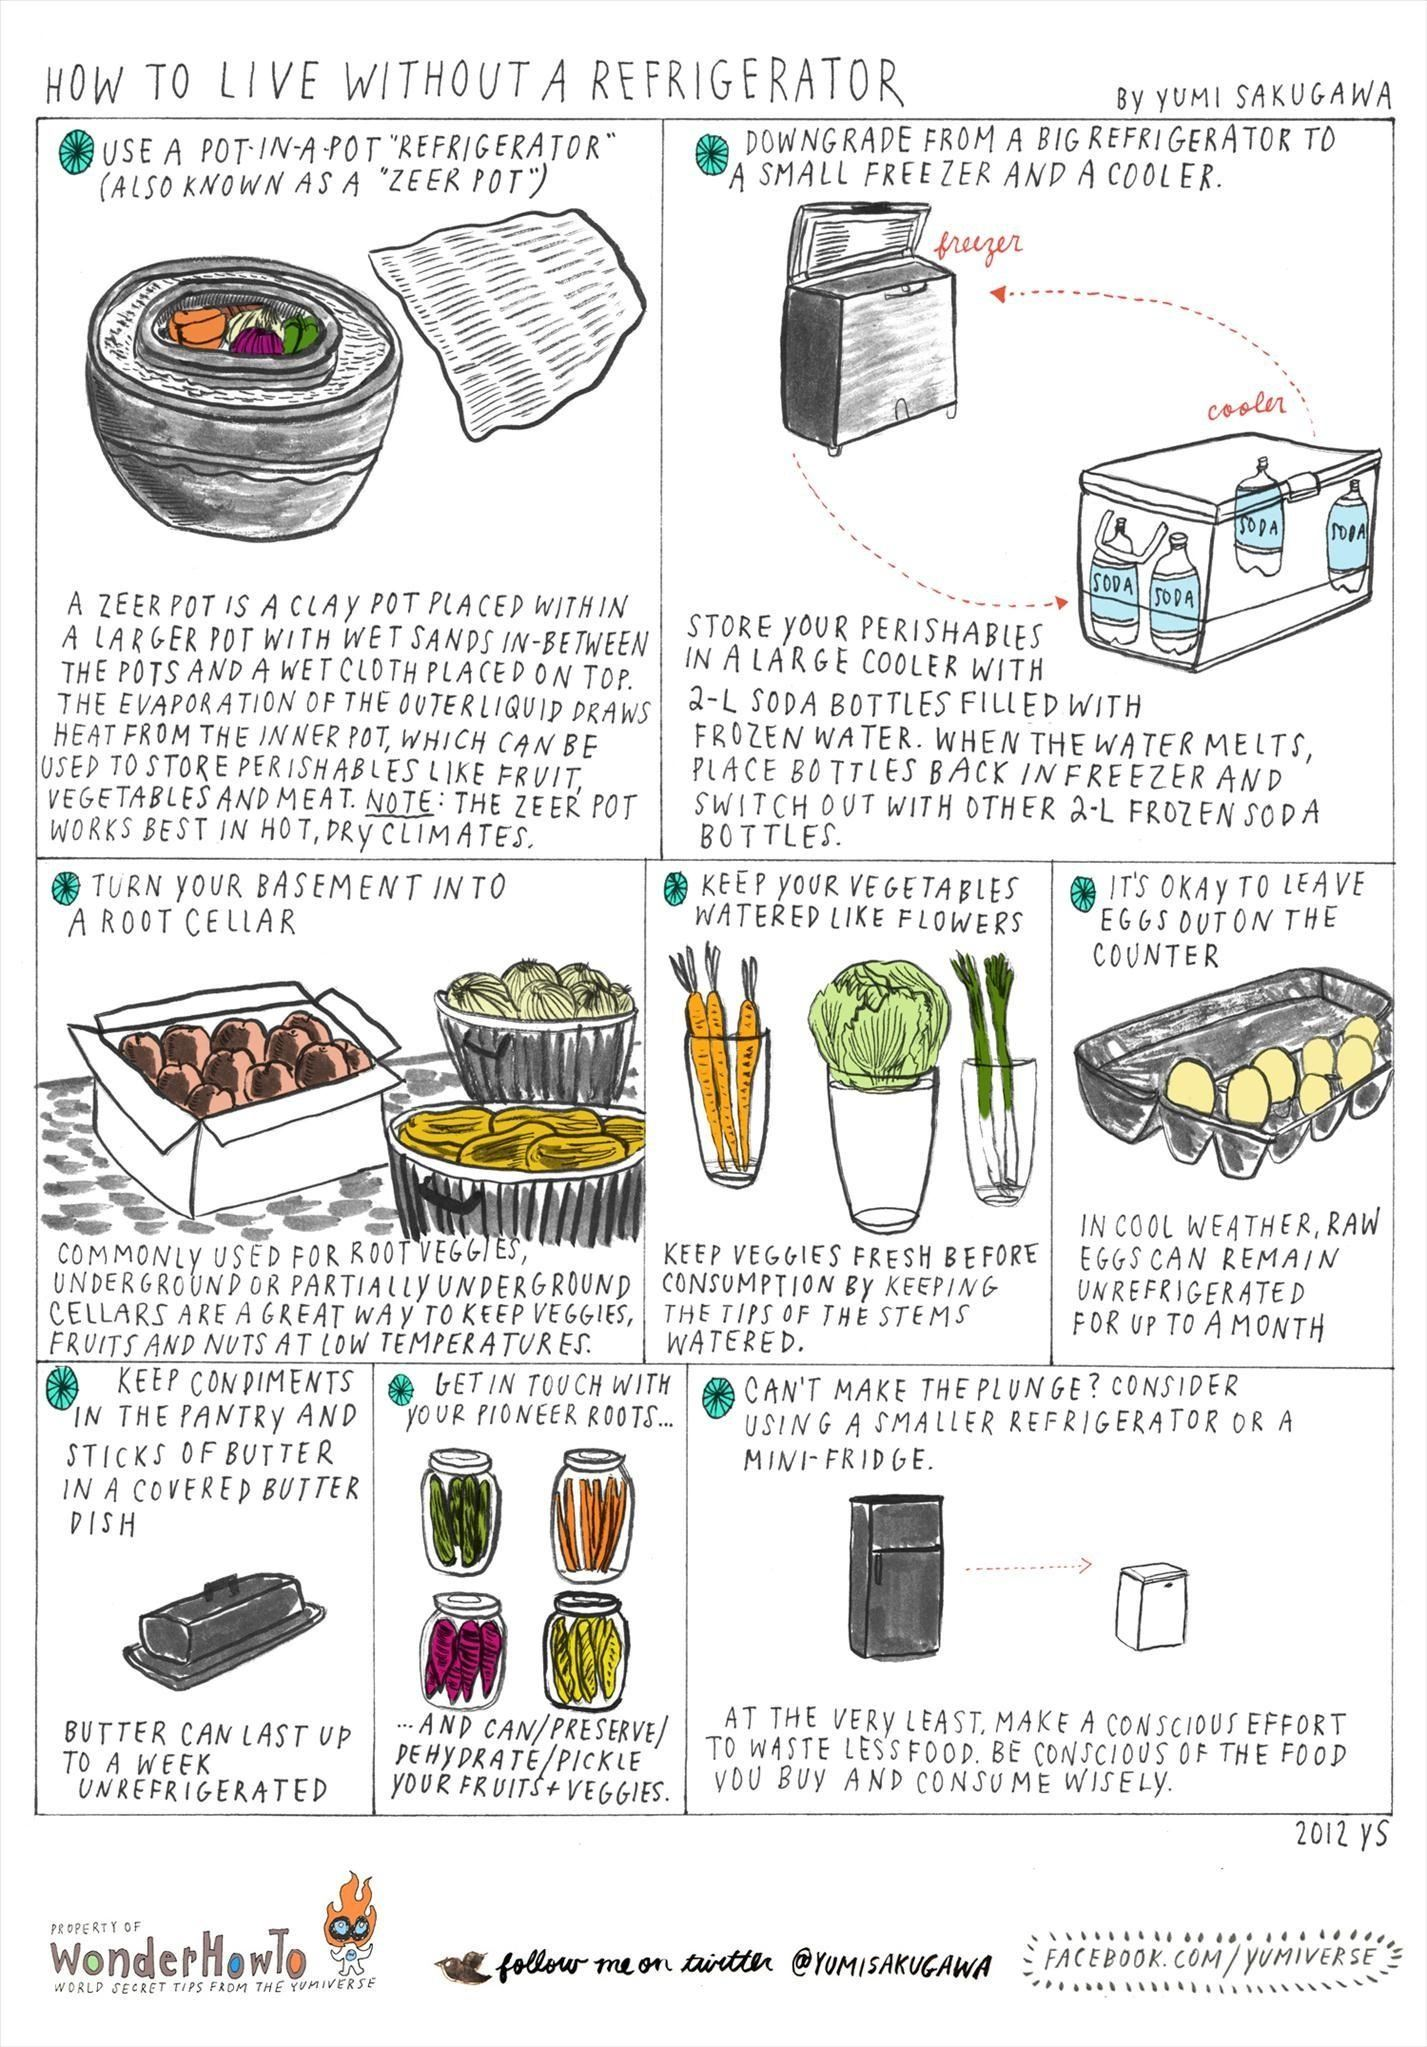 How to Live Without a Refrigerator